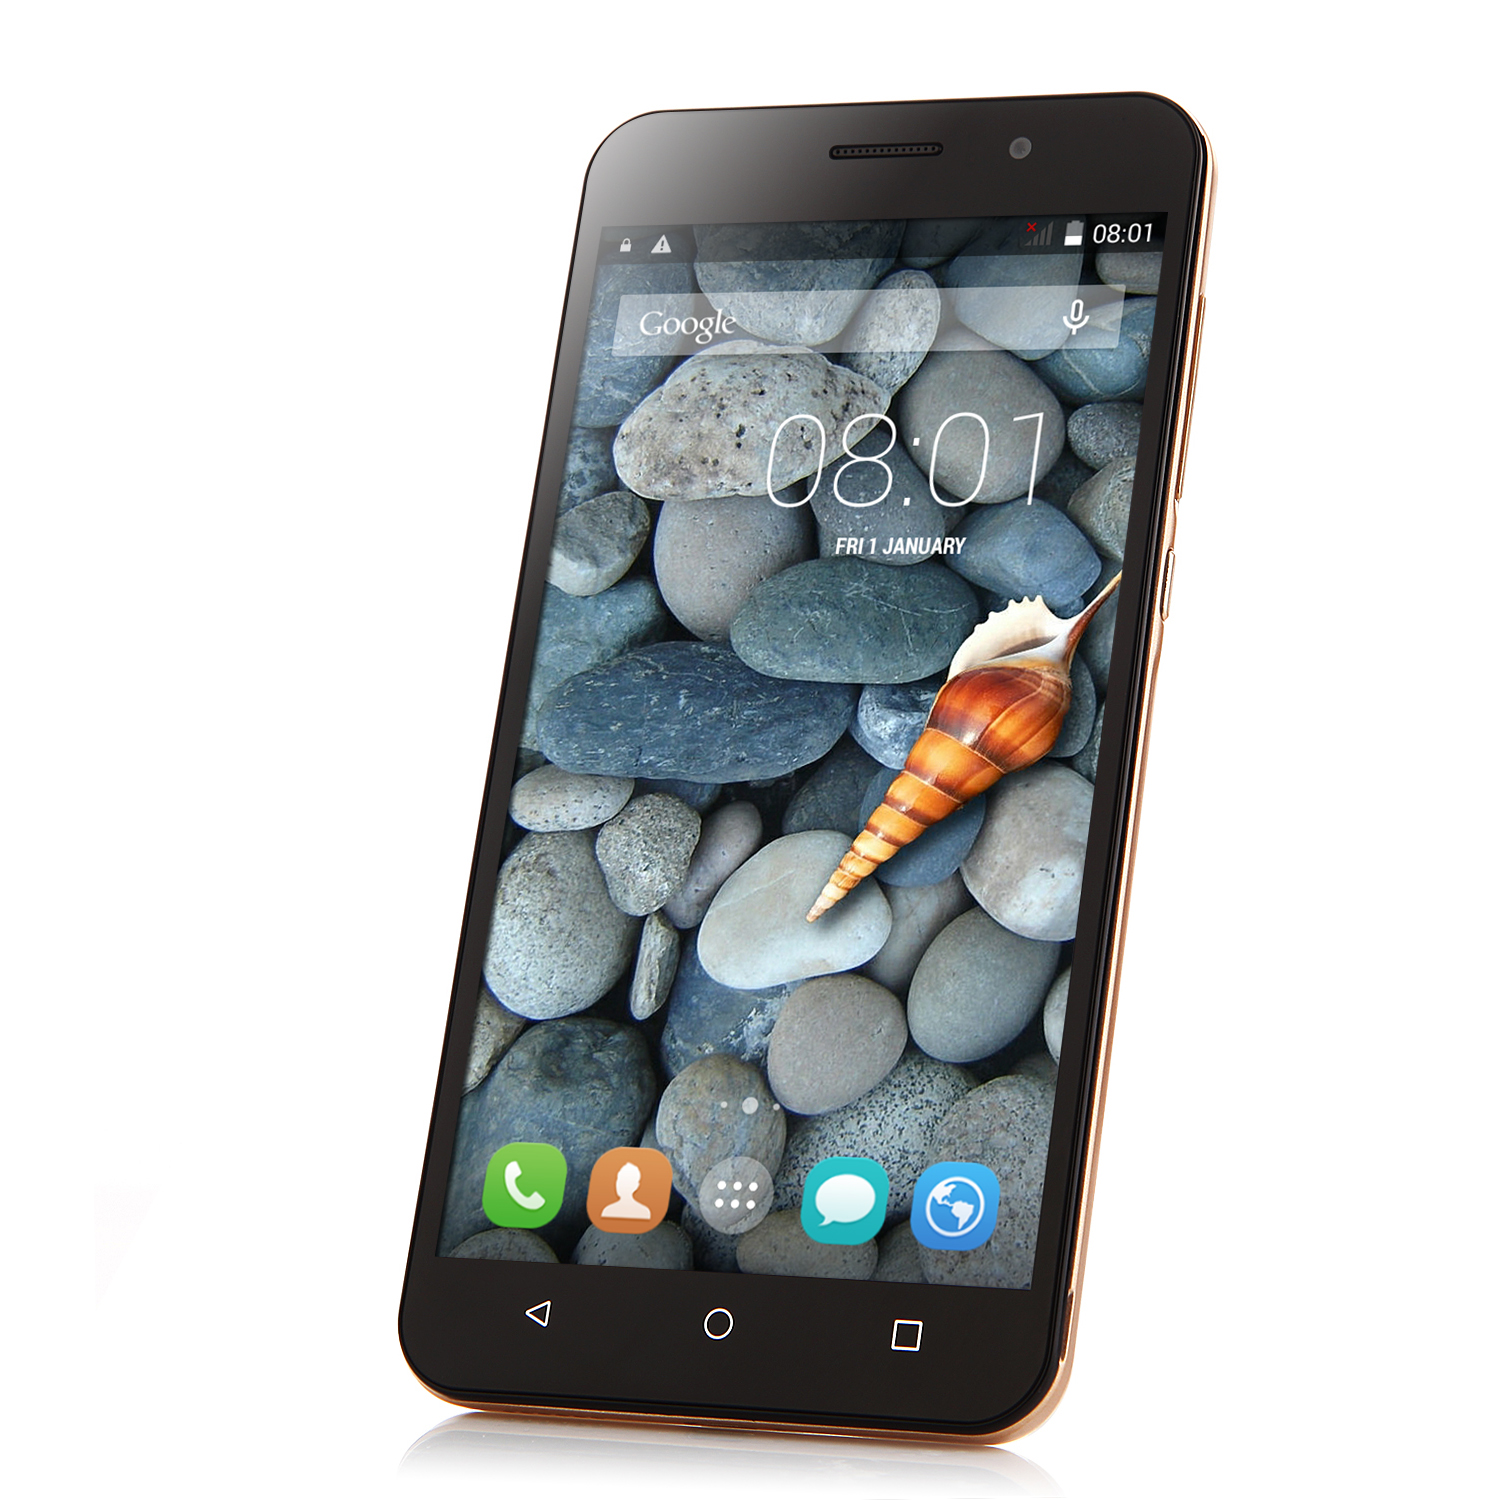 X4 Smartphone Android 4.4 MTK6582 Quad Core 5.5 Inch QHD Screen 512MB 4GB Gold